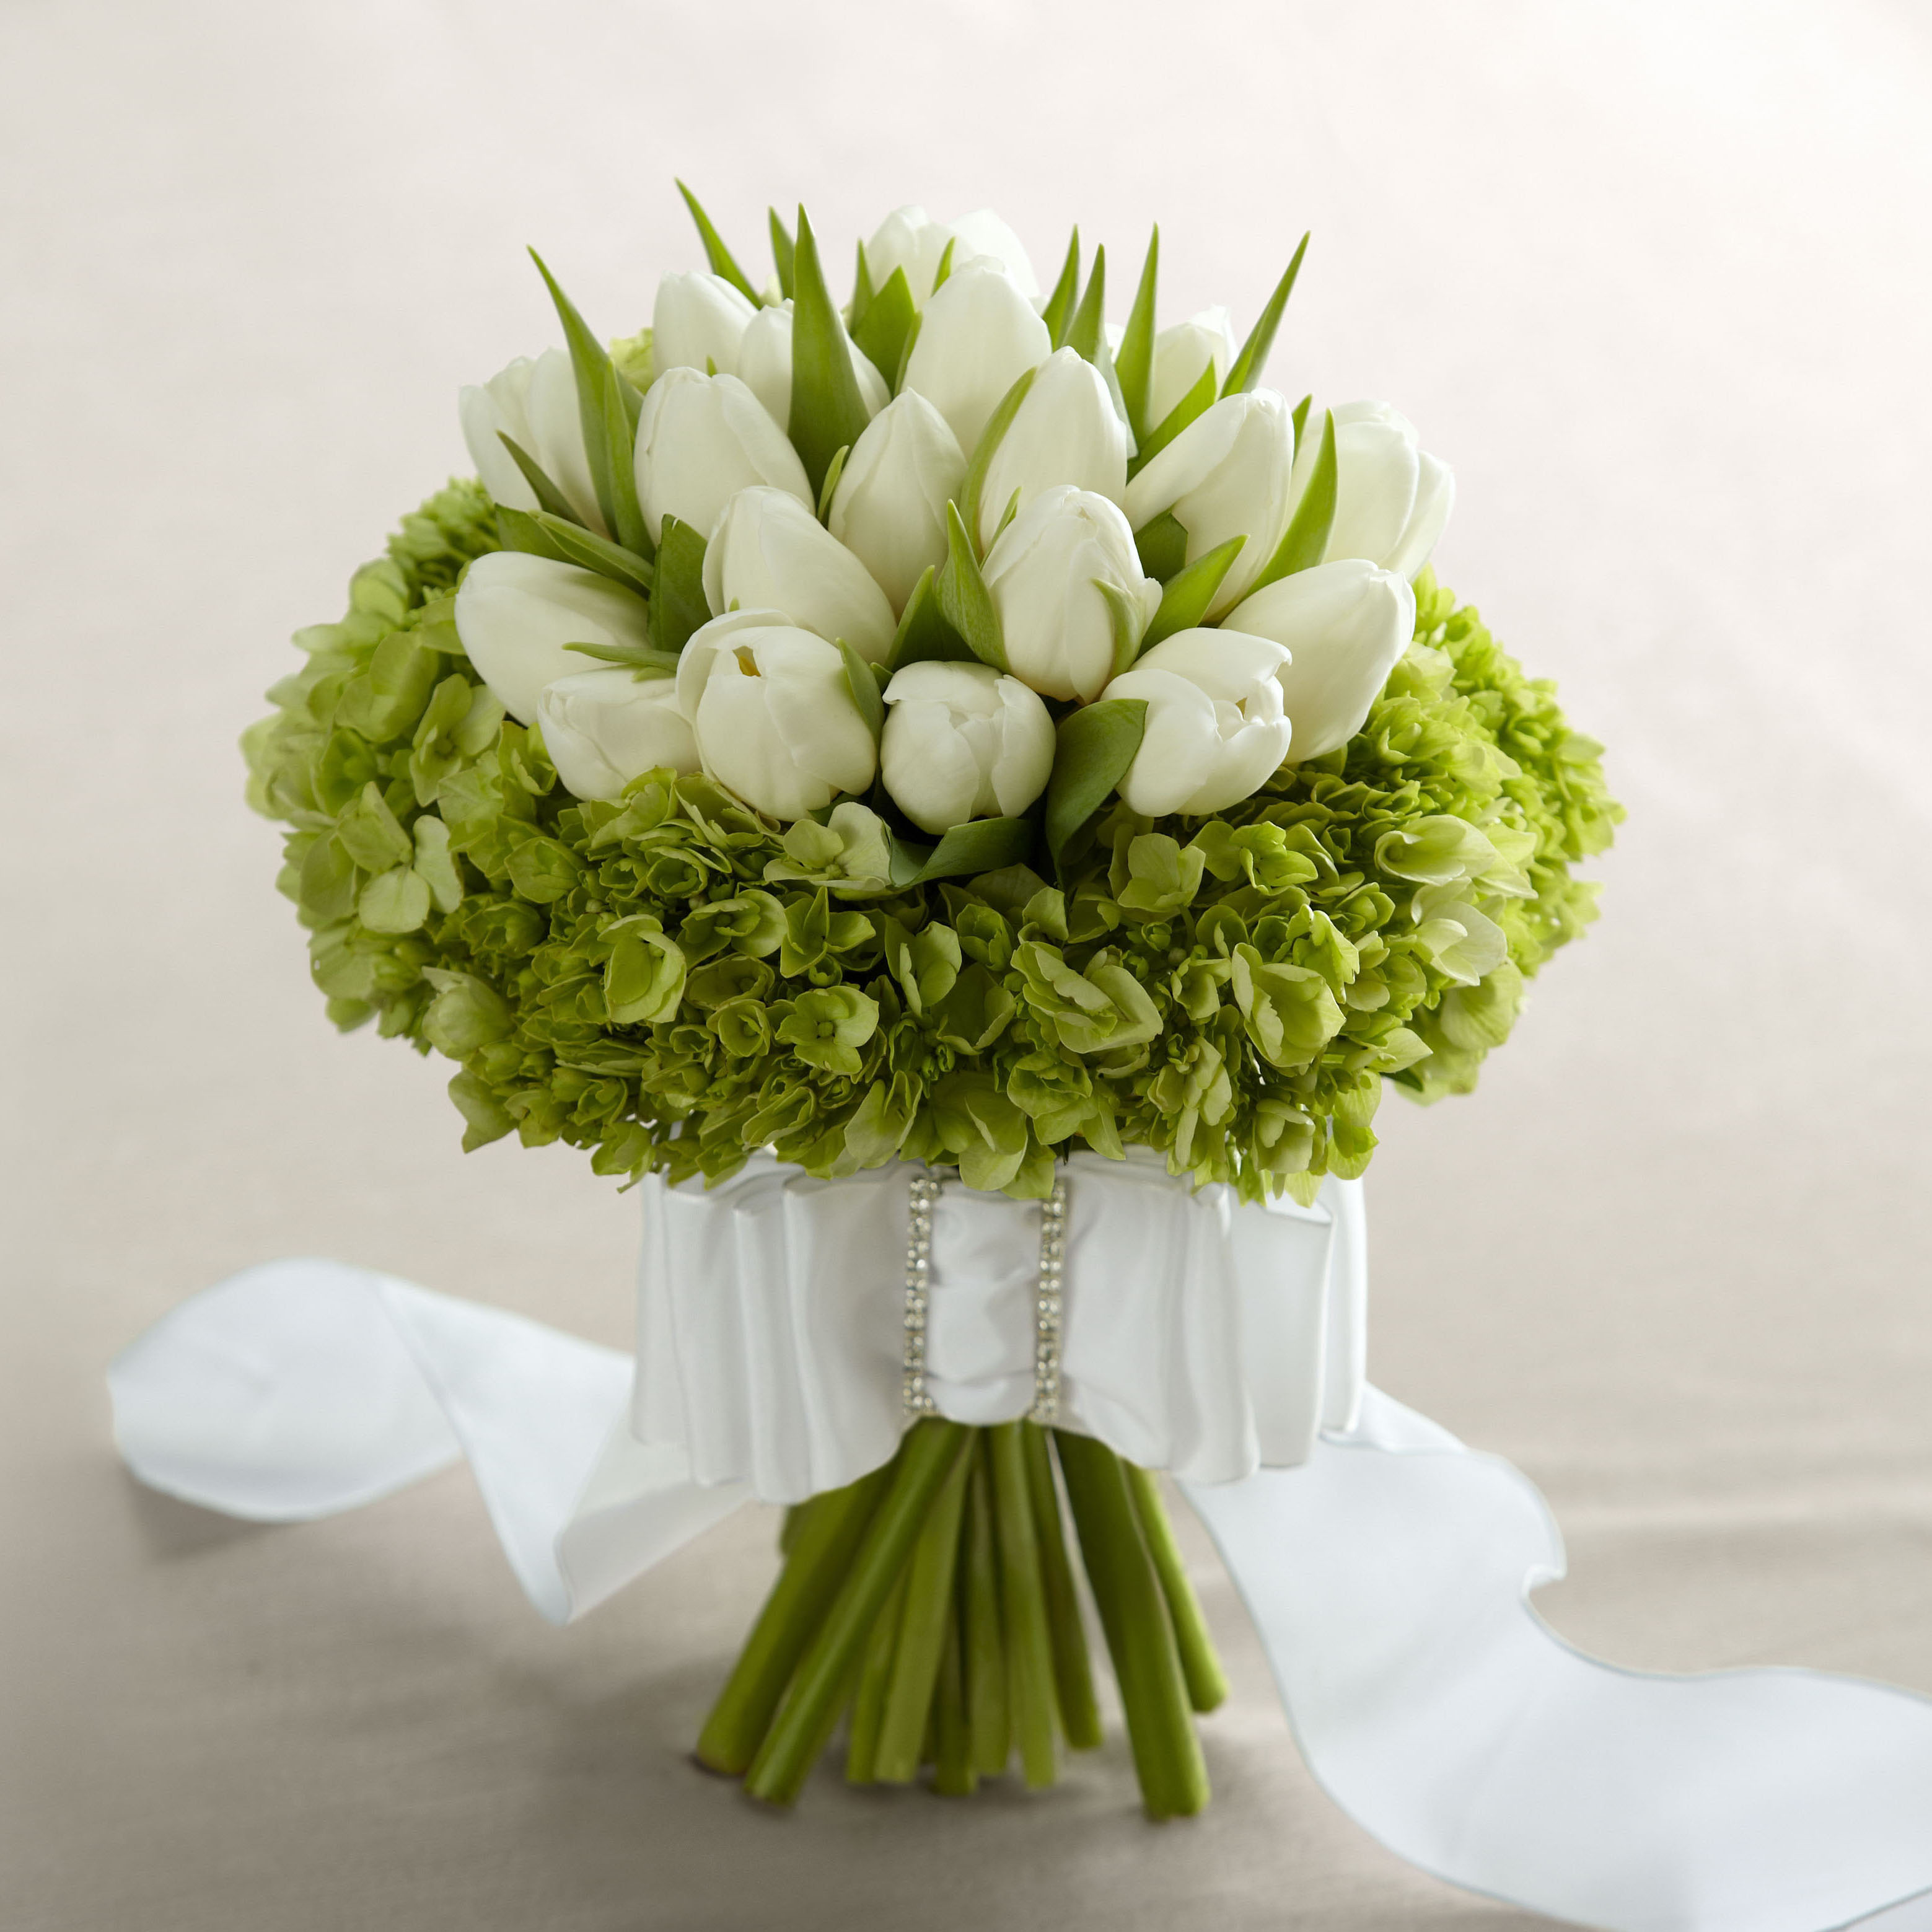 Tulips Flower Arrangement Tulip Flower Arrangements For Weddings | Hd Wallpapers